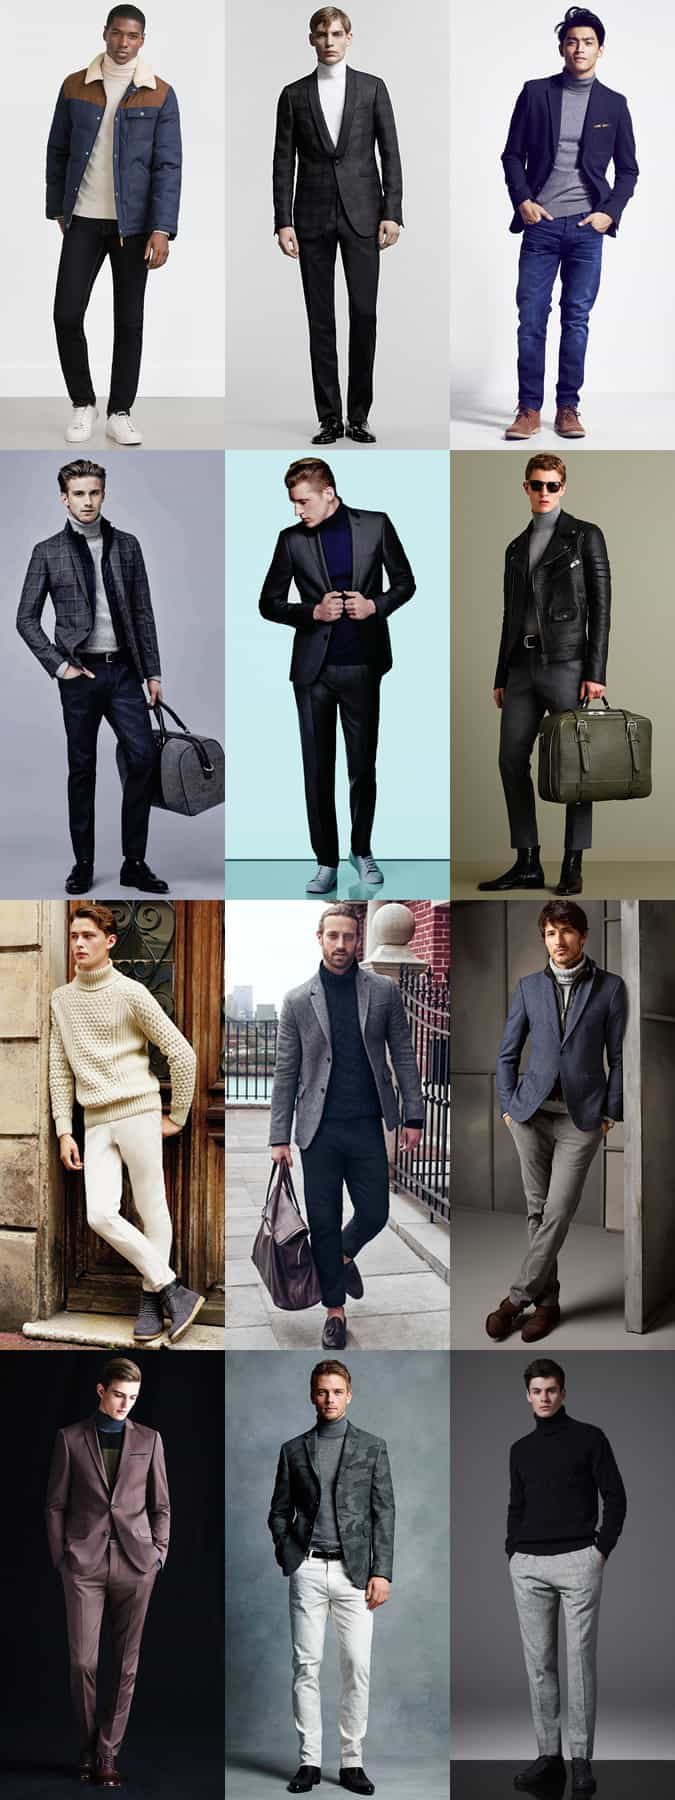 Men's Roll Neck Outfit Inspiration Lookbook